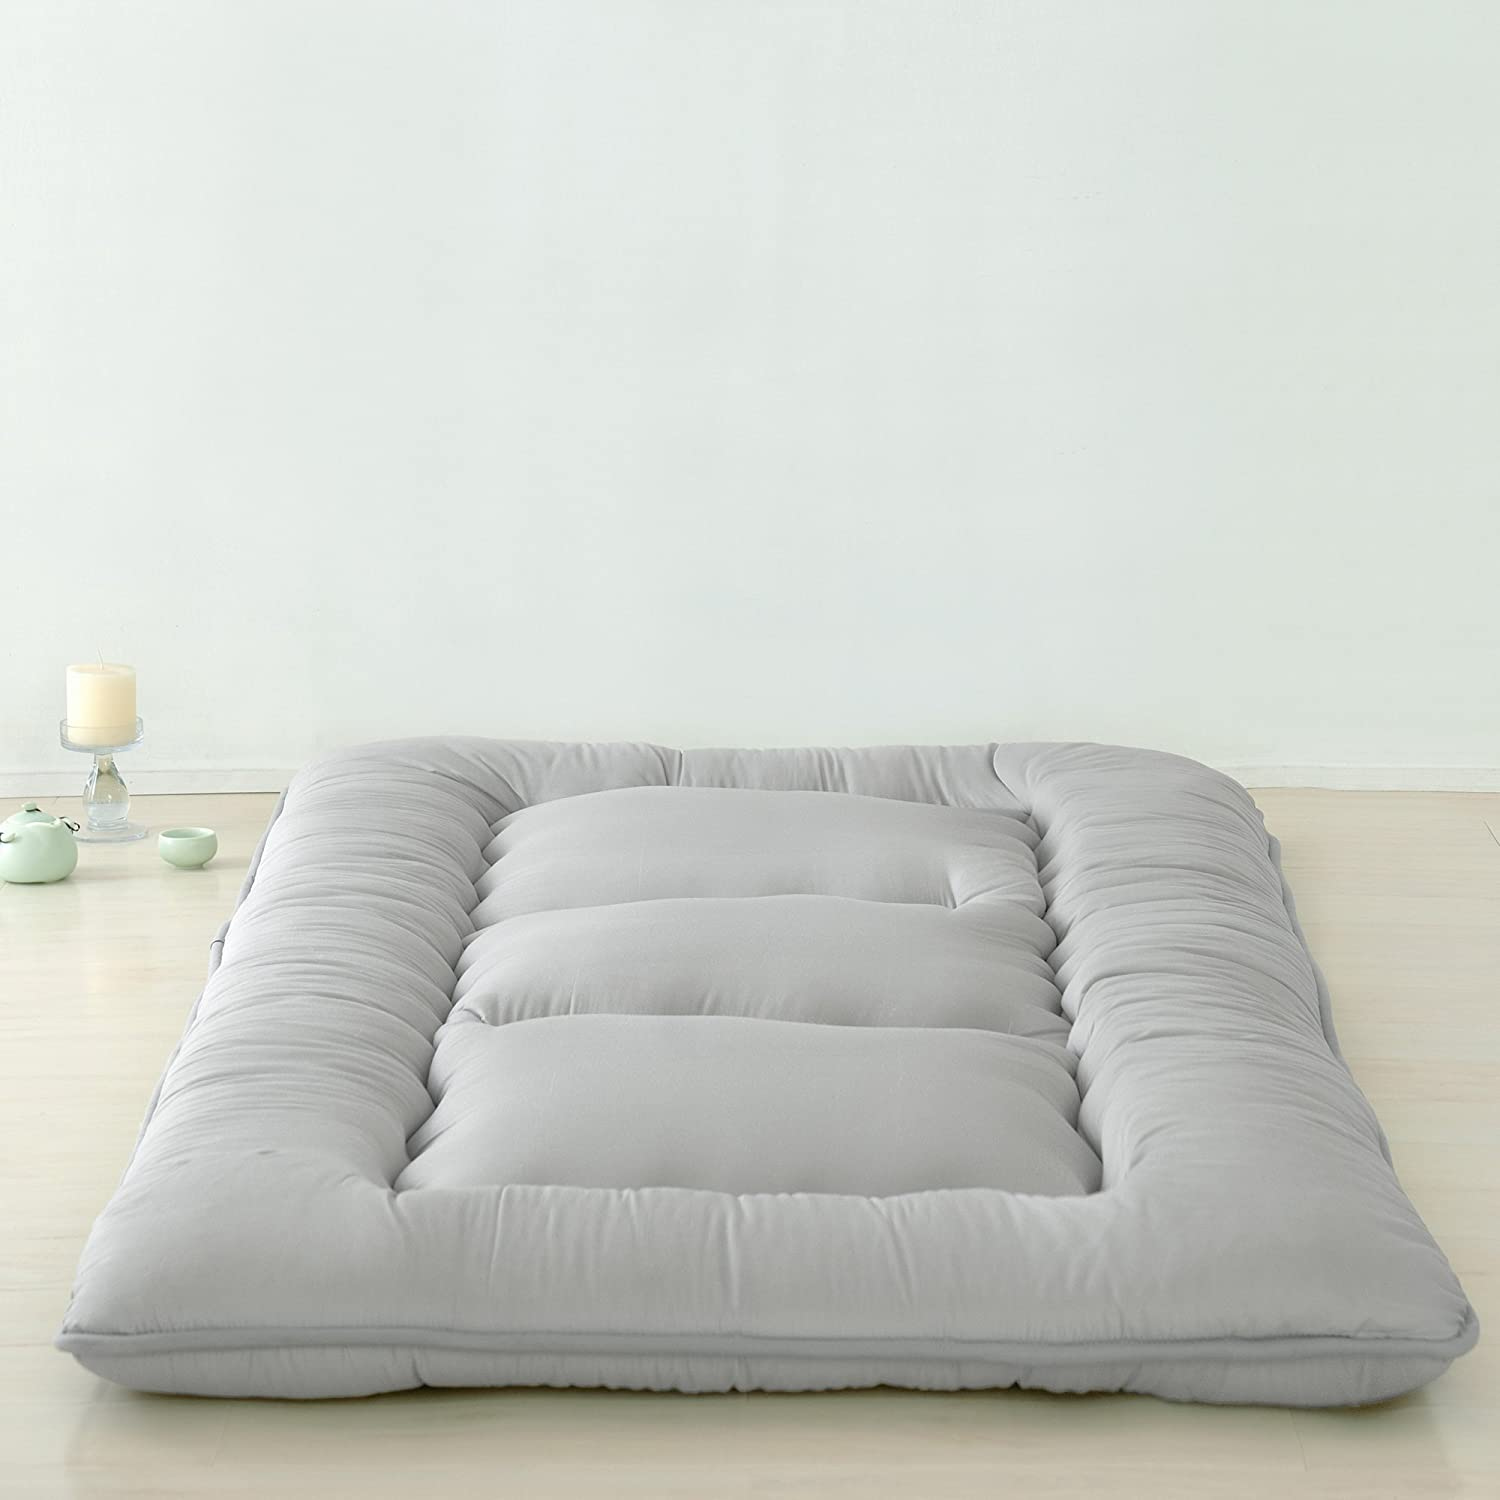 mattress your amazing ideas within best mattresses futons for amazon nice home bedroom sale endearing futon idea